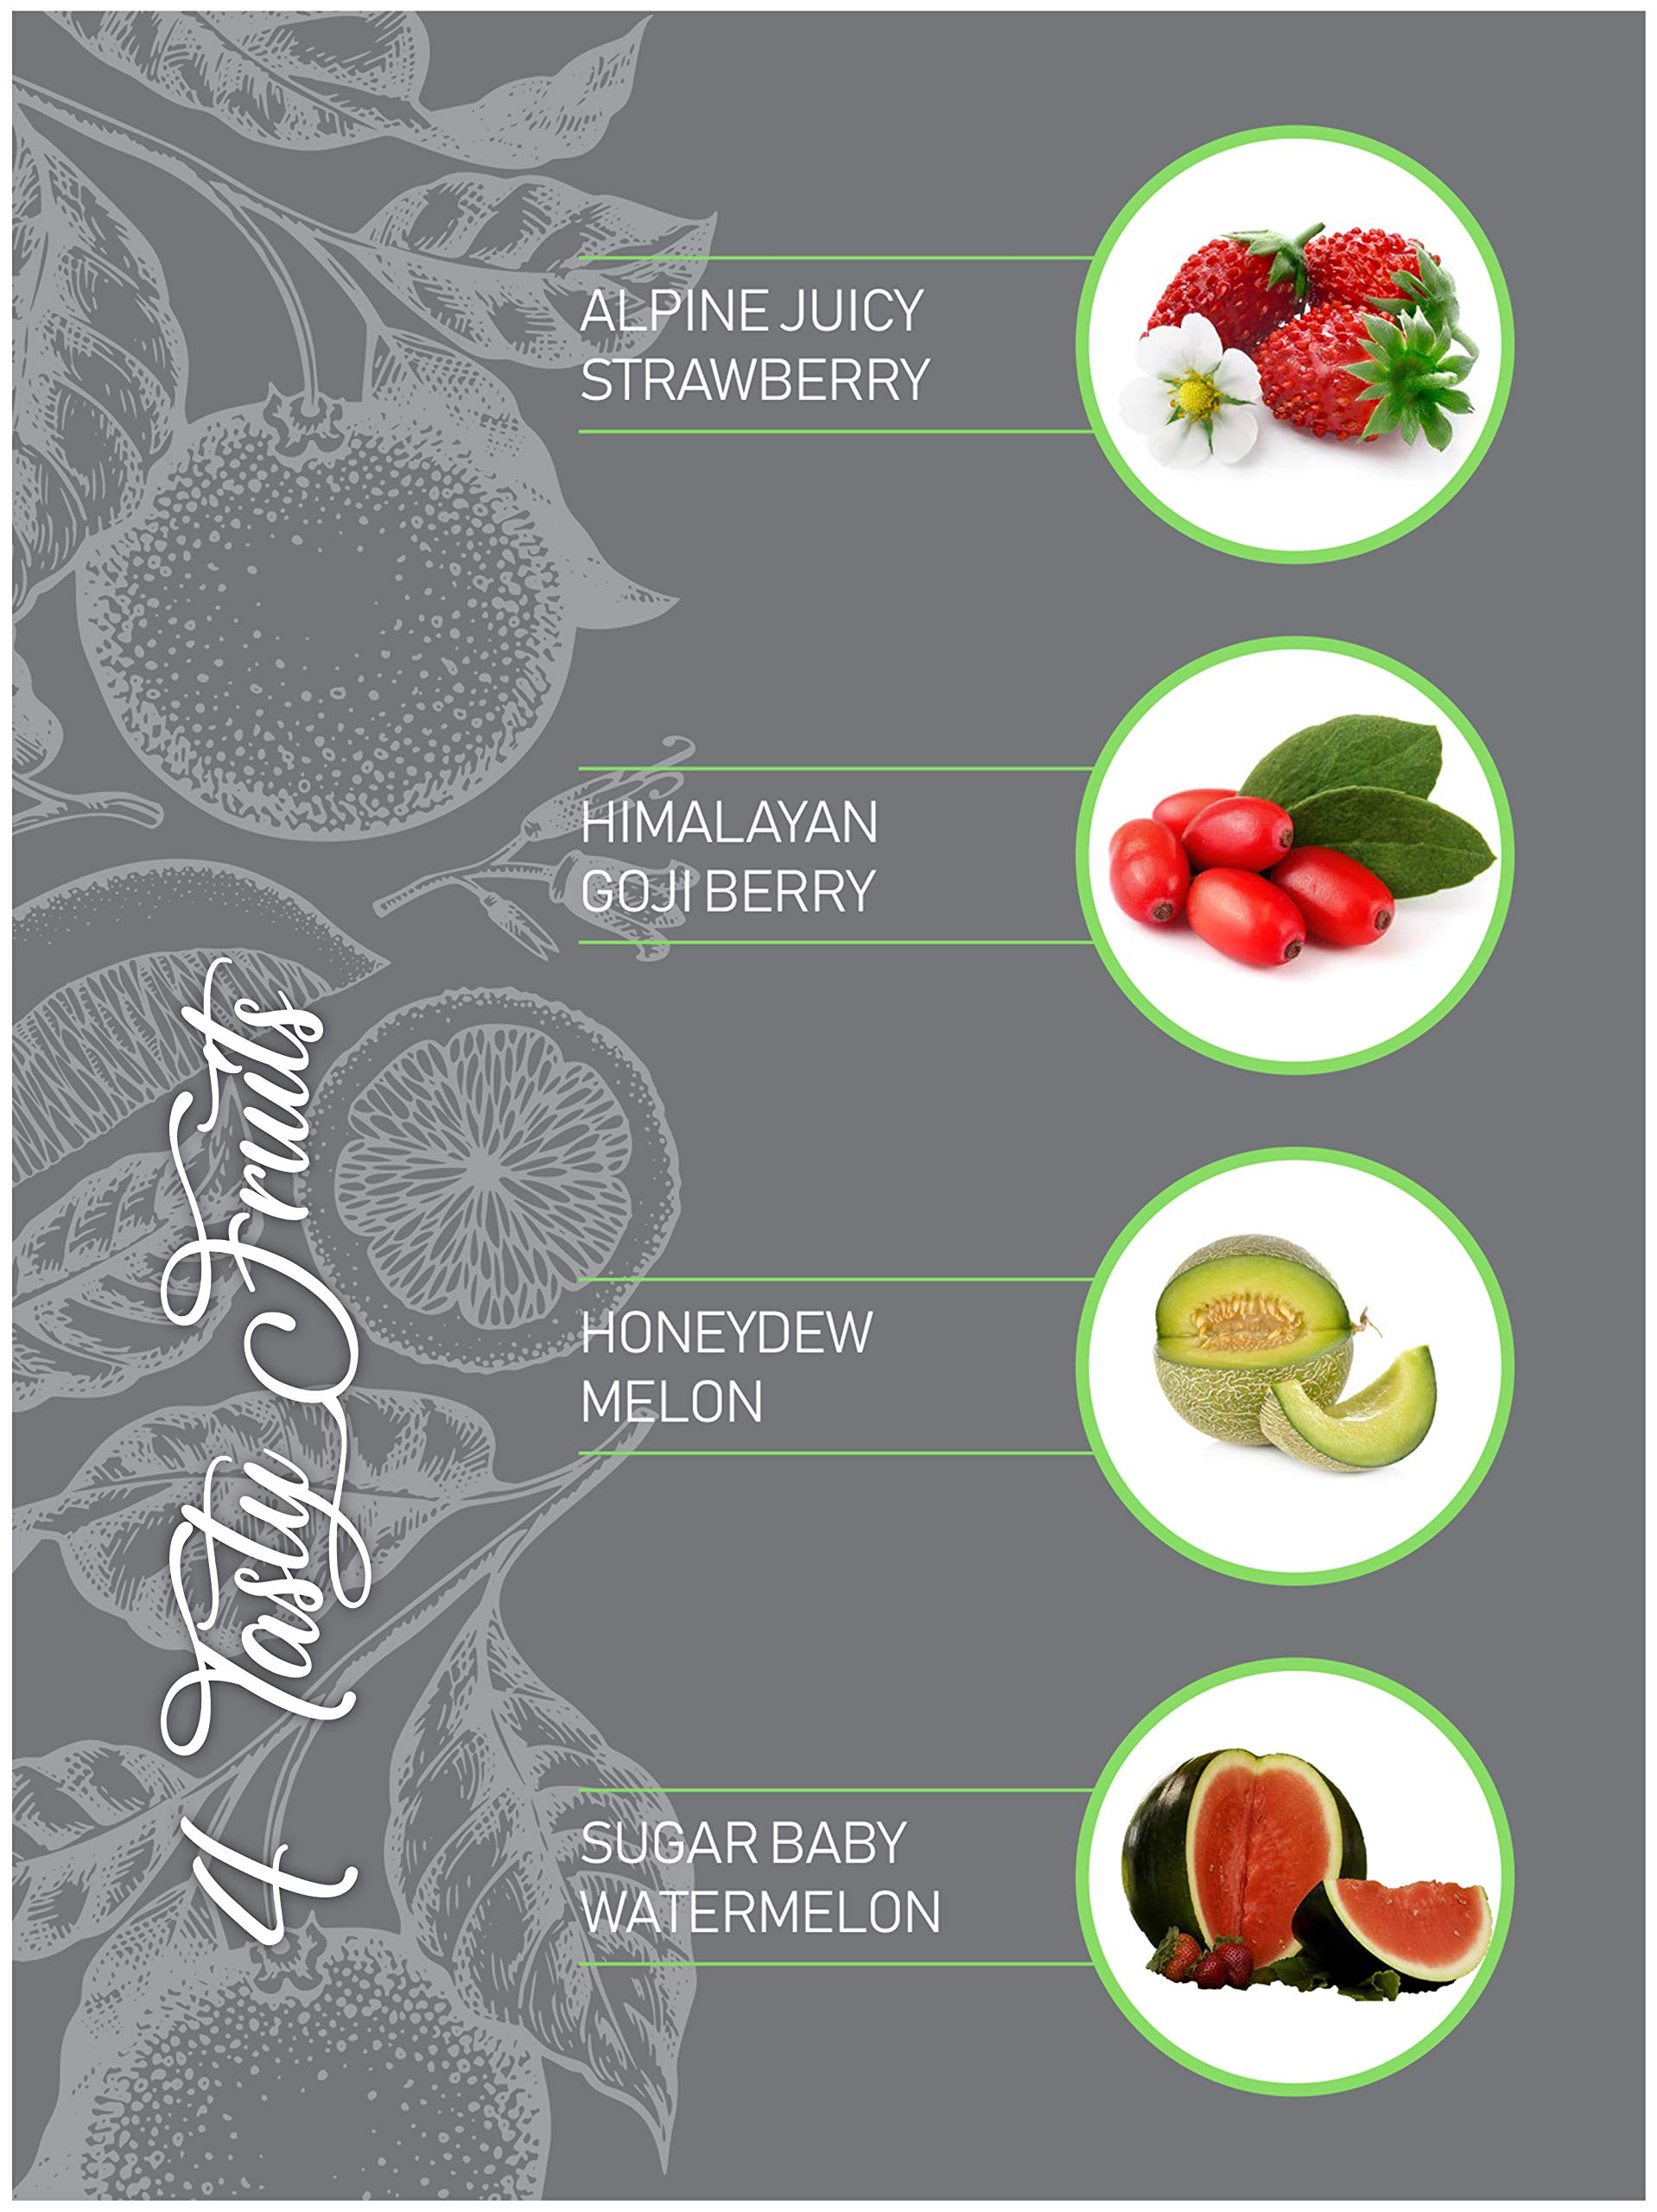 Planters' Choice Exotic Fruits Growing Kit - Everything Included to Easily Grow 4 Unique Fruits - Strawberries, Goji Berries, Honeydew, Watermelon + Moisture Meter by Planters' Choice (Image #2)